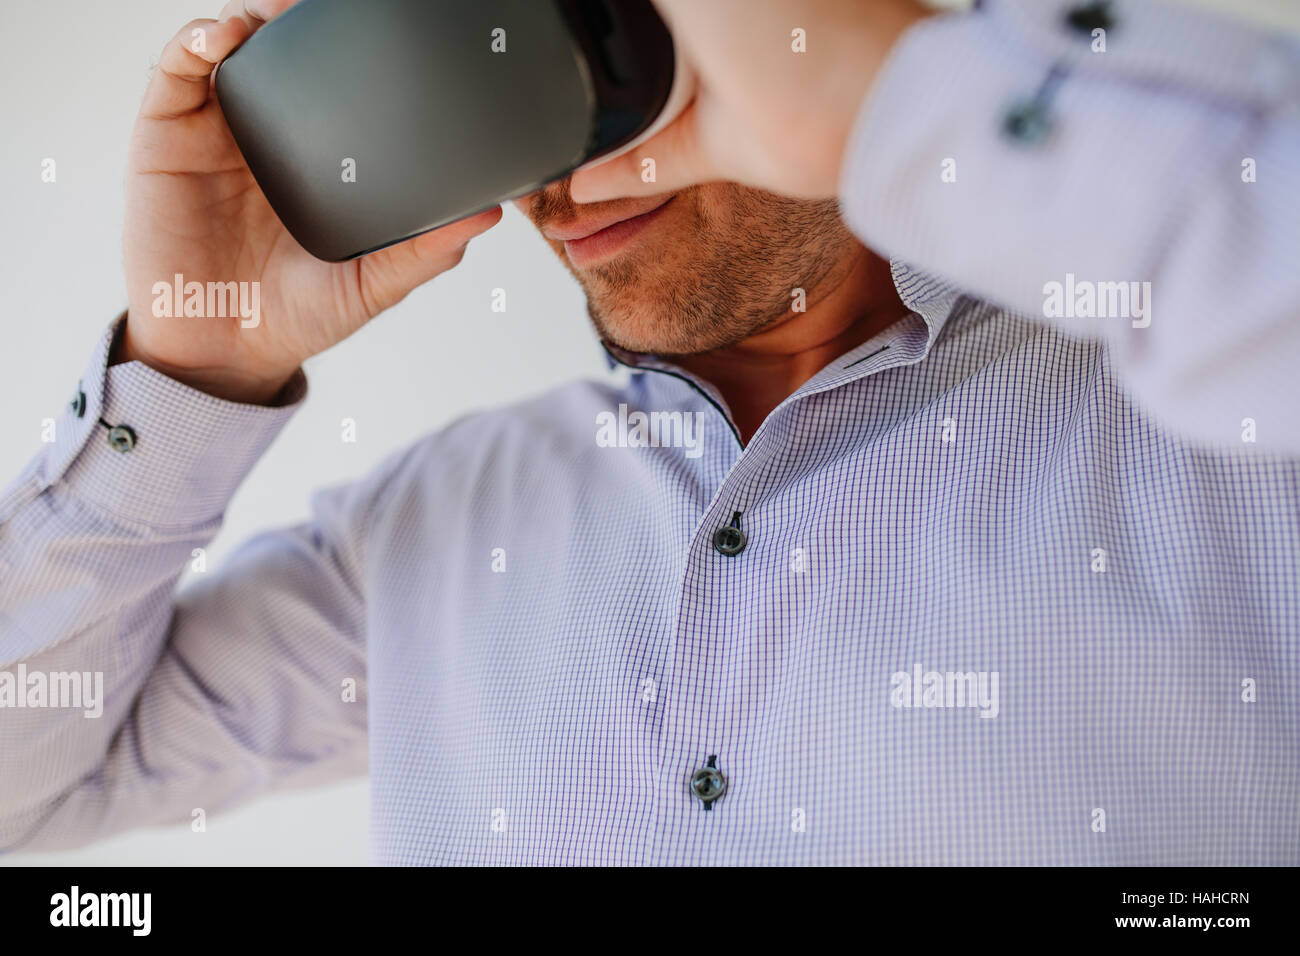 Closeup shot of young man using Virtual Reality glasses. Businessman wearing VR goggles. - Stock Image